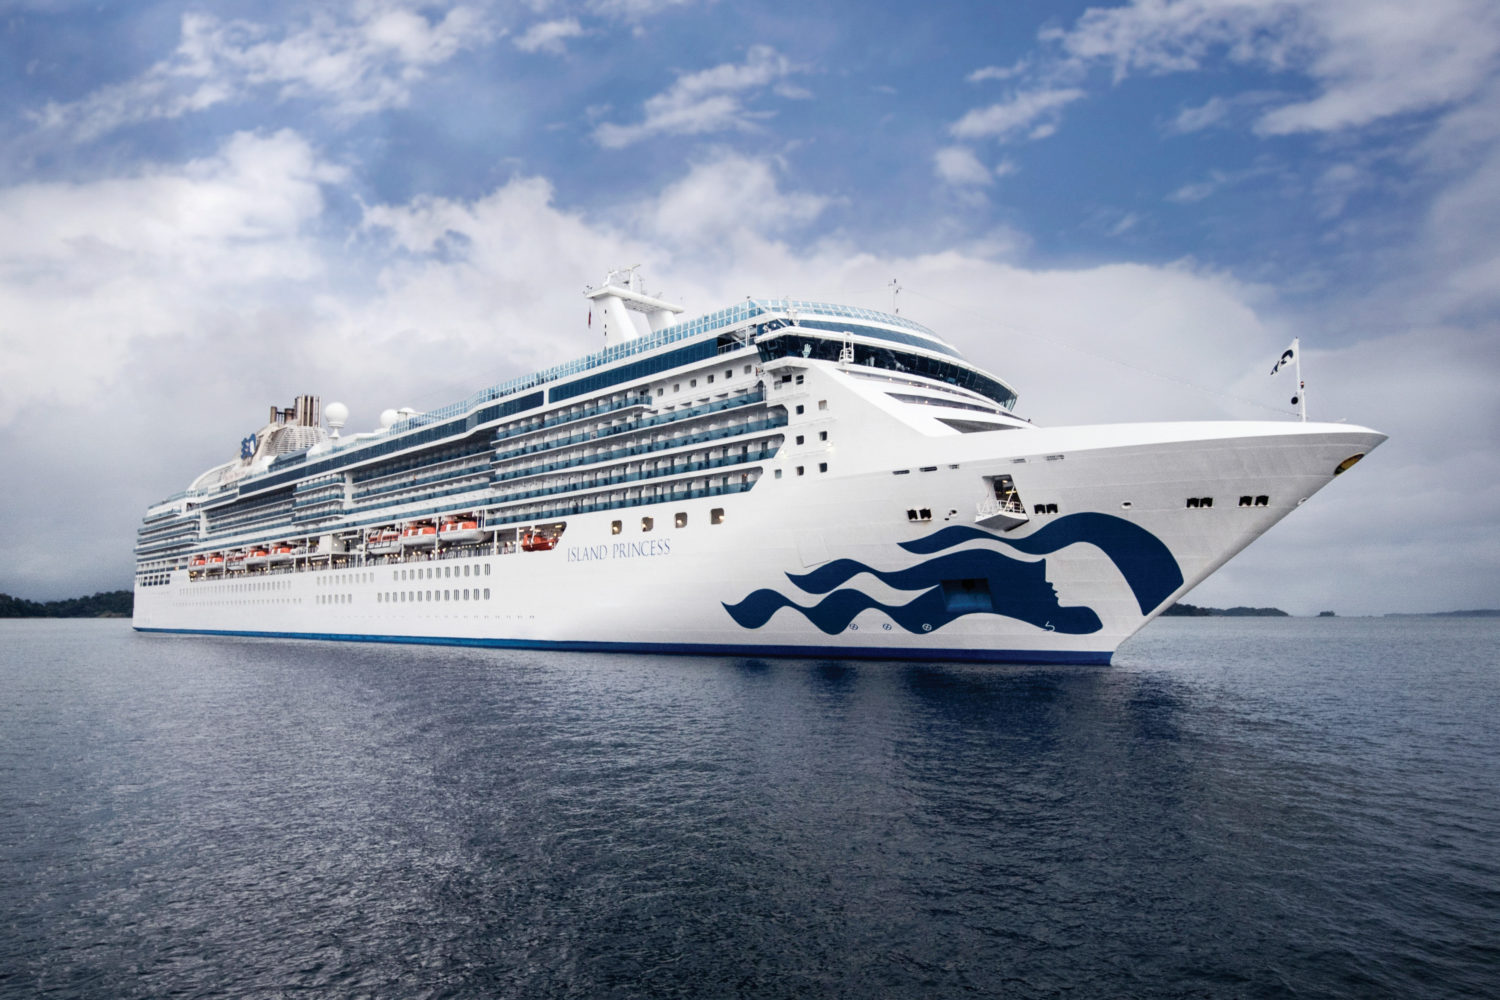 Princess Cruises new world cruise sets one day sales record for the cruise  line | Cruise.Blog